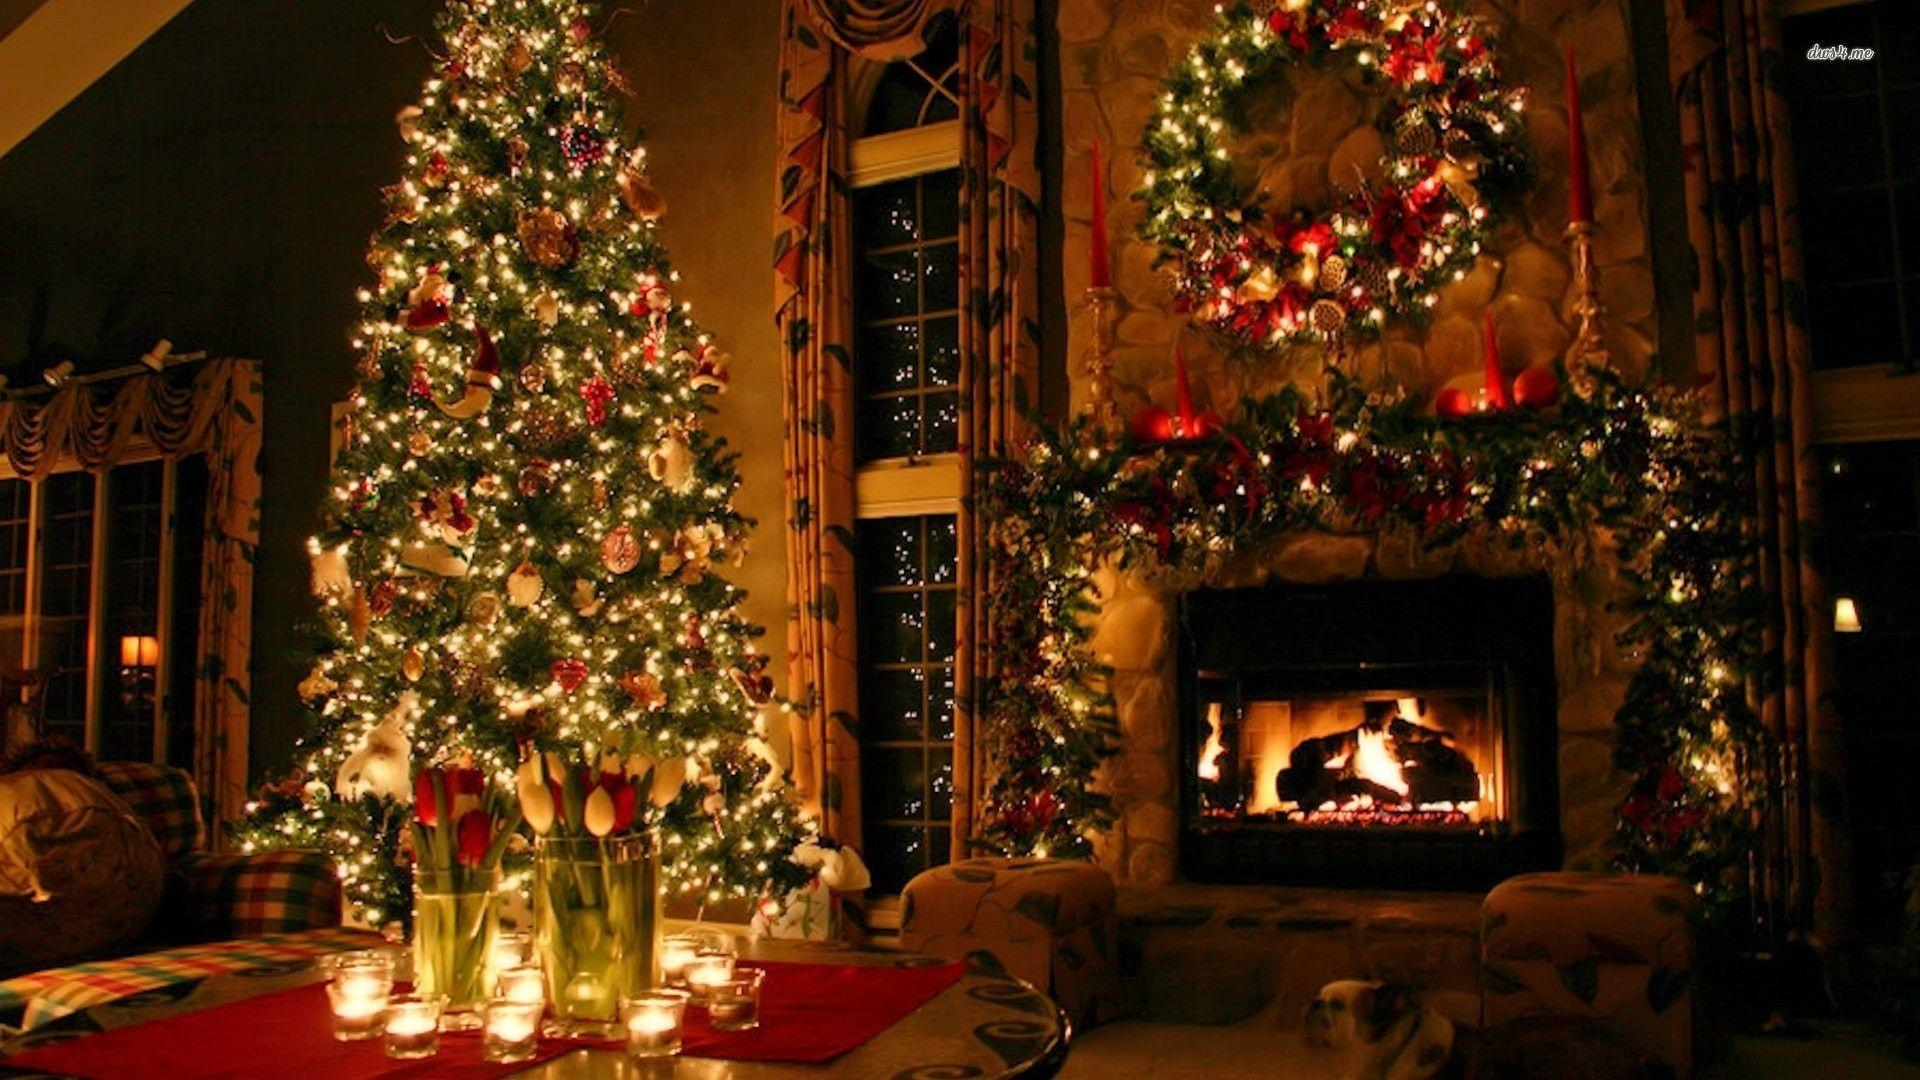 Christmas Holiday Decorations Desktop Wallpapers